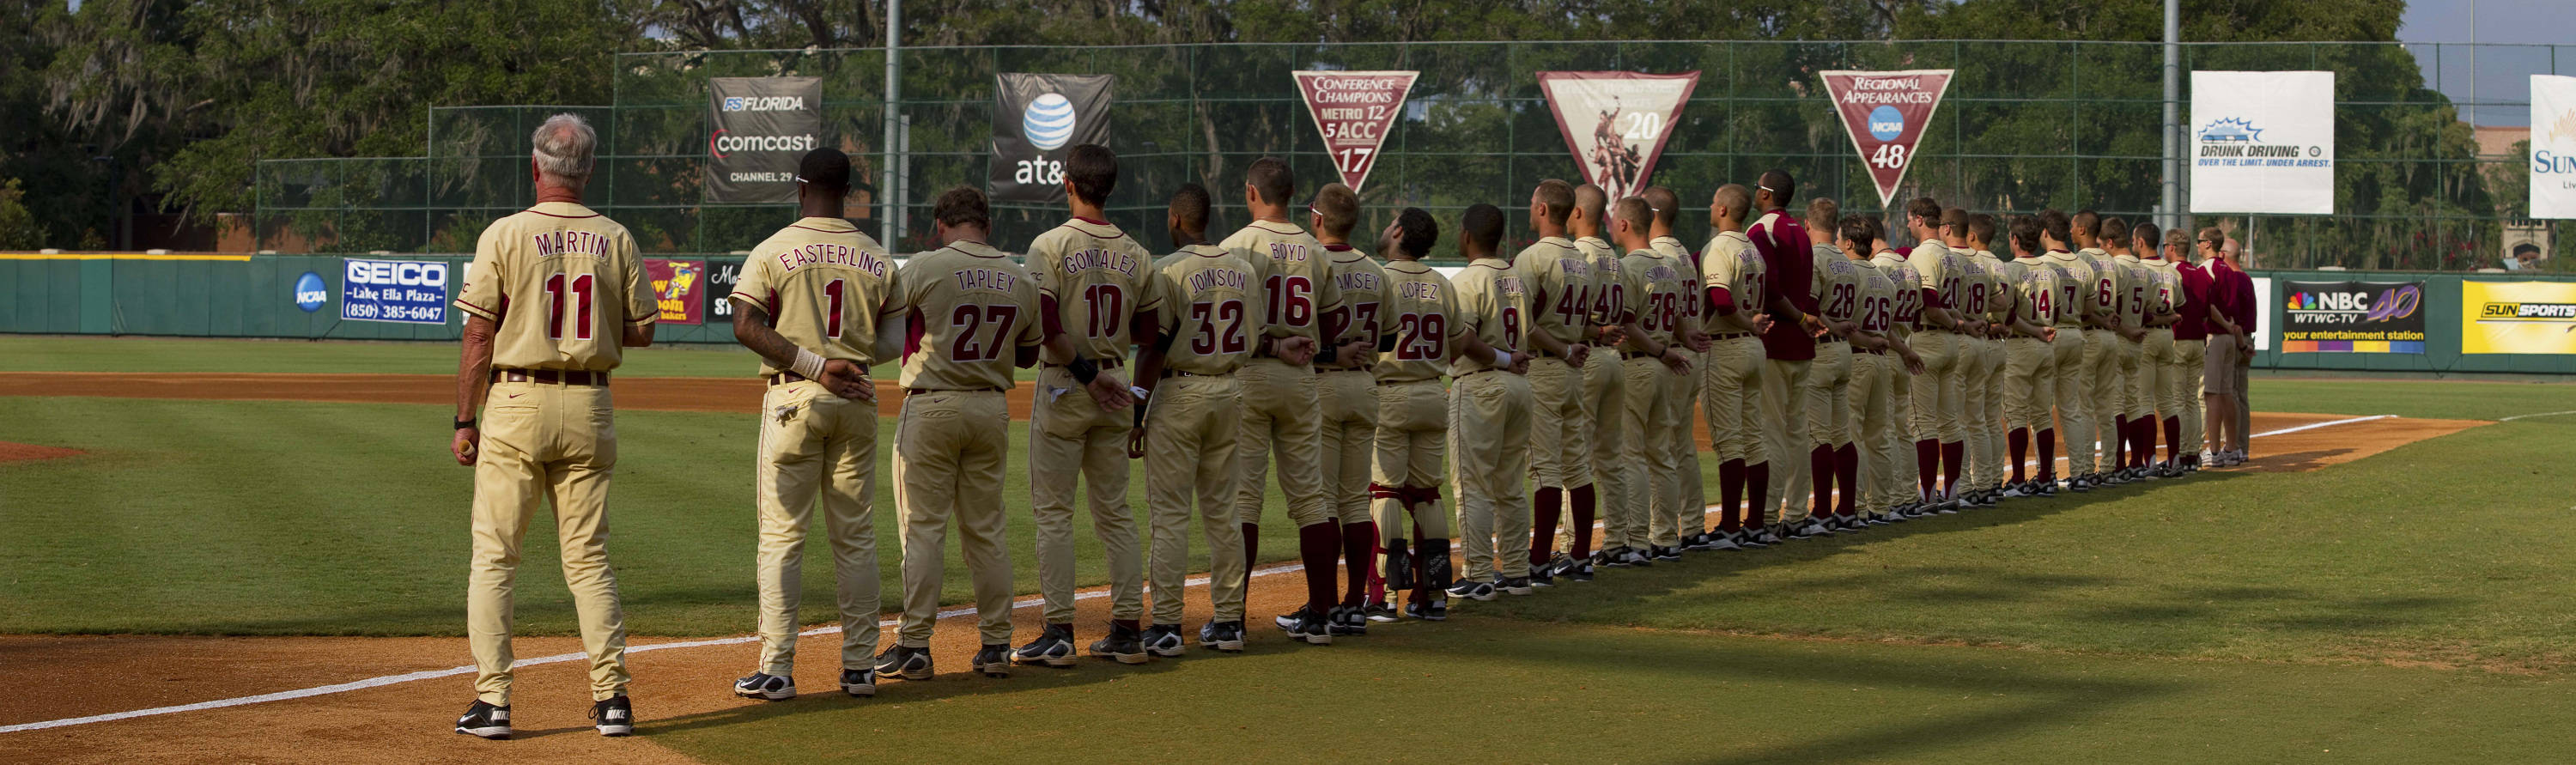 The Seminoles line up to honor the flag during the playing of the national anthem.